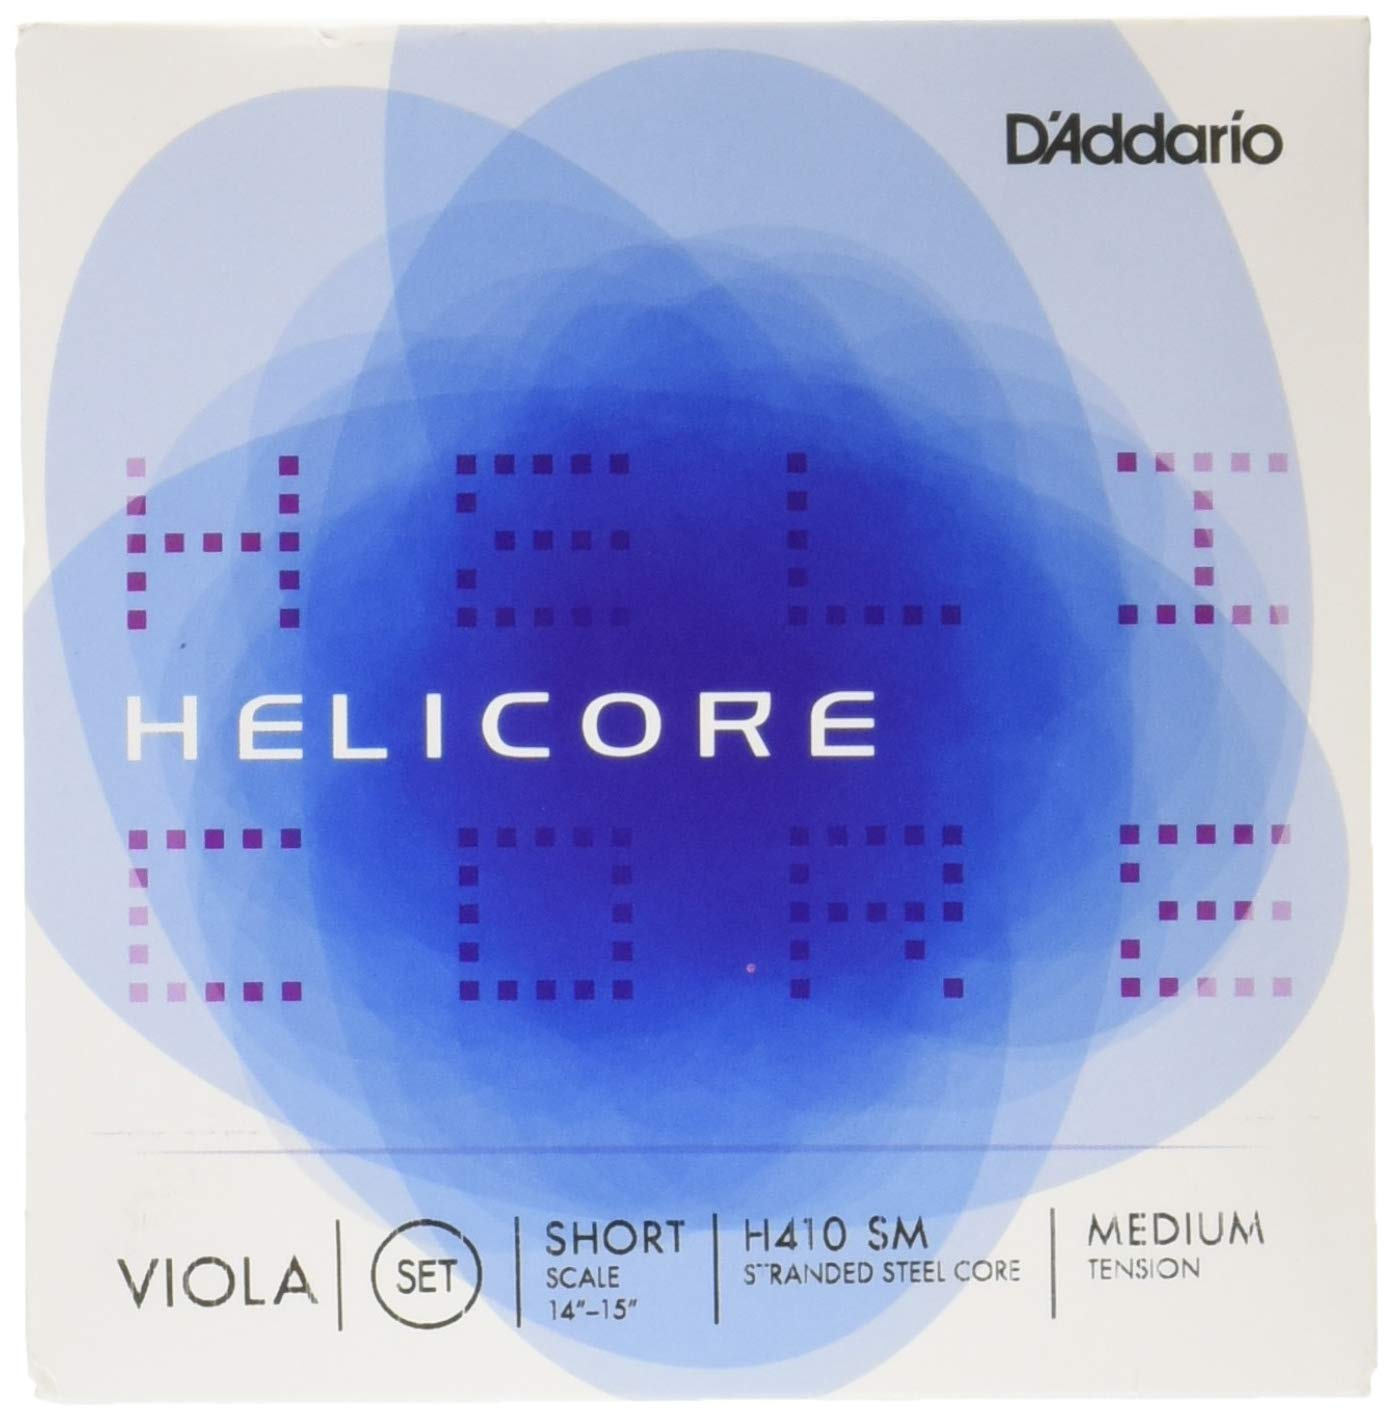 D'Addario Helicore Viola String Set, Long Scale, Heavy Tension D' Addario &Co. Inc H410 LH